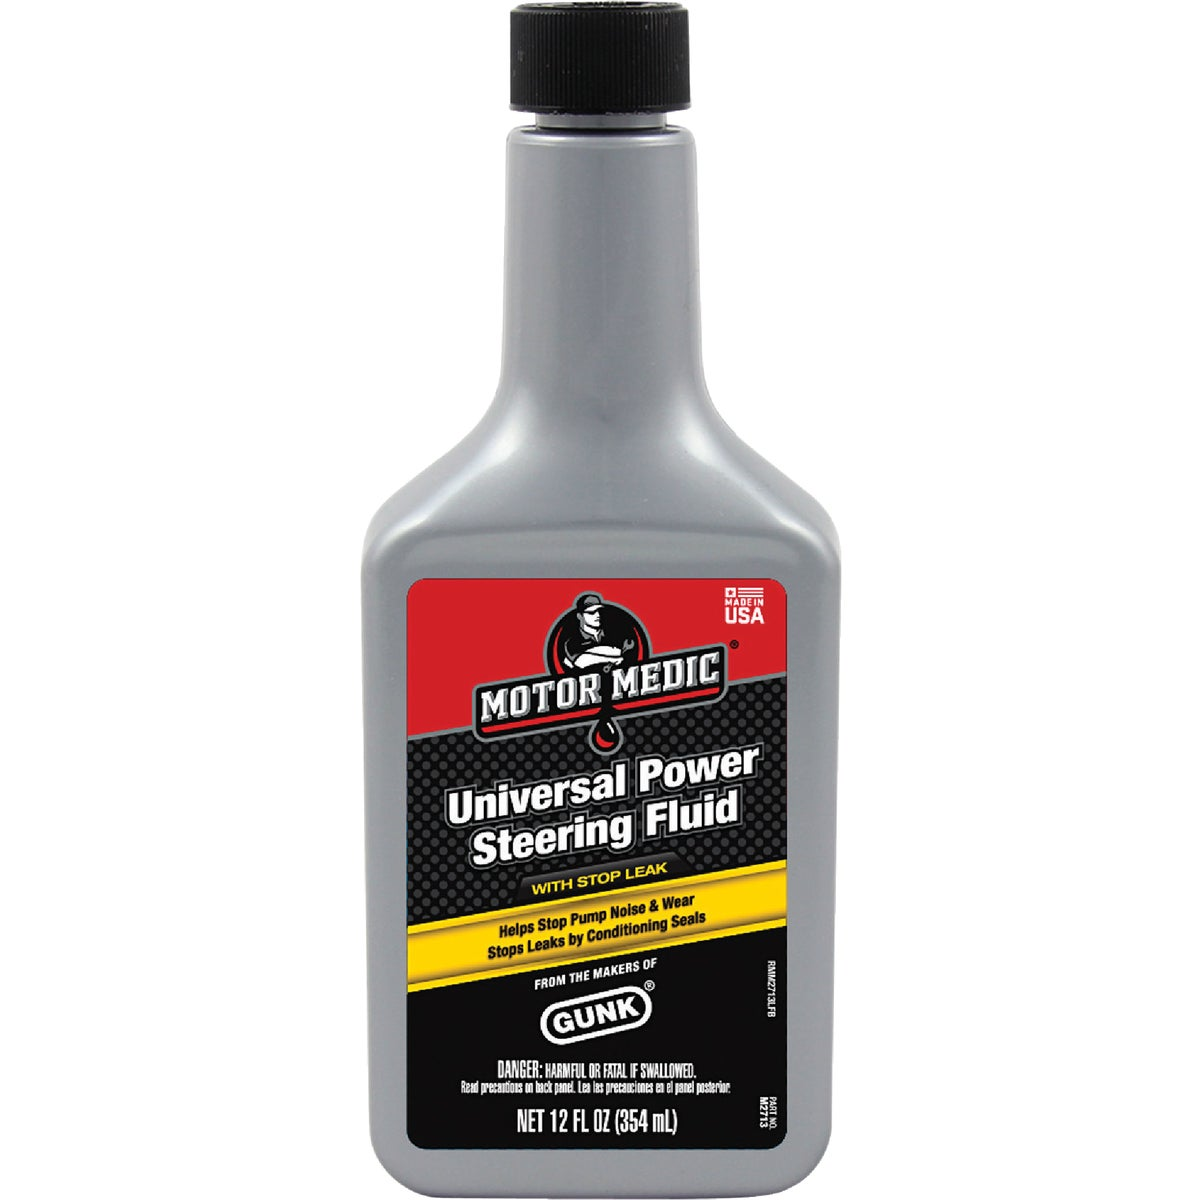 12OZ PWR STEERING FLUID - M2713 by Radiator Specialty